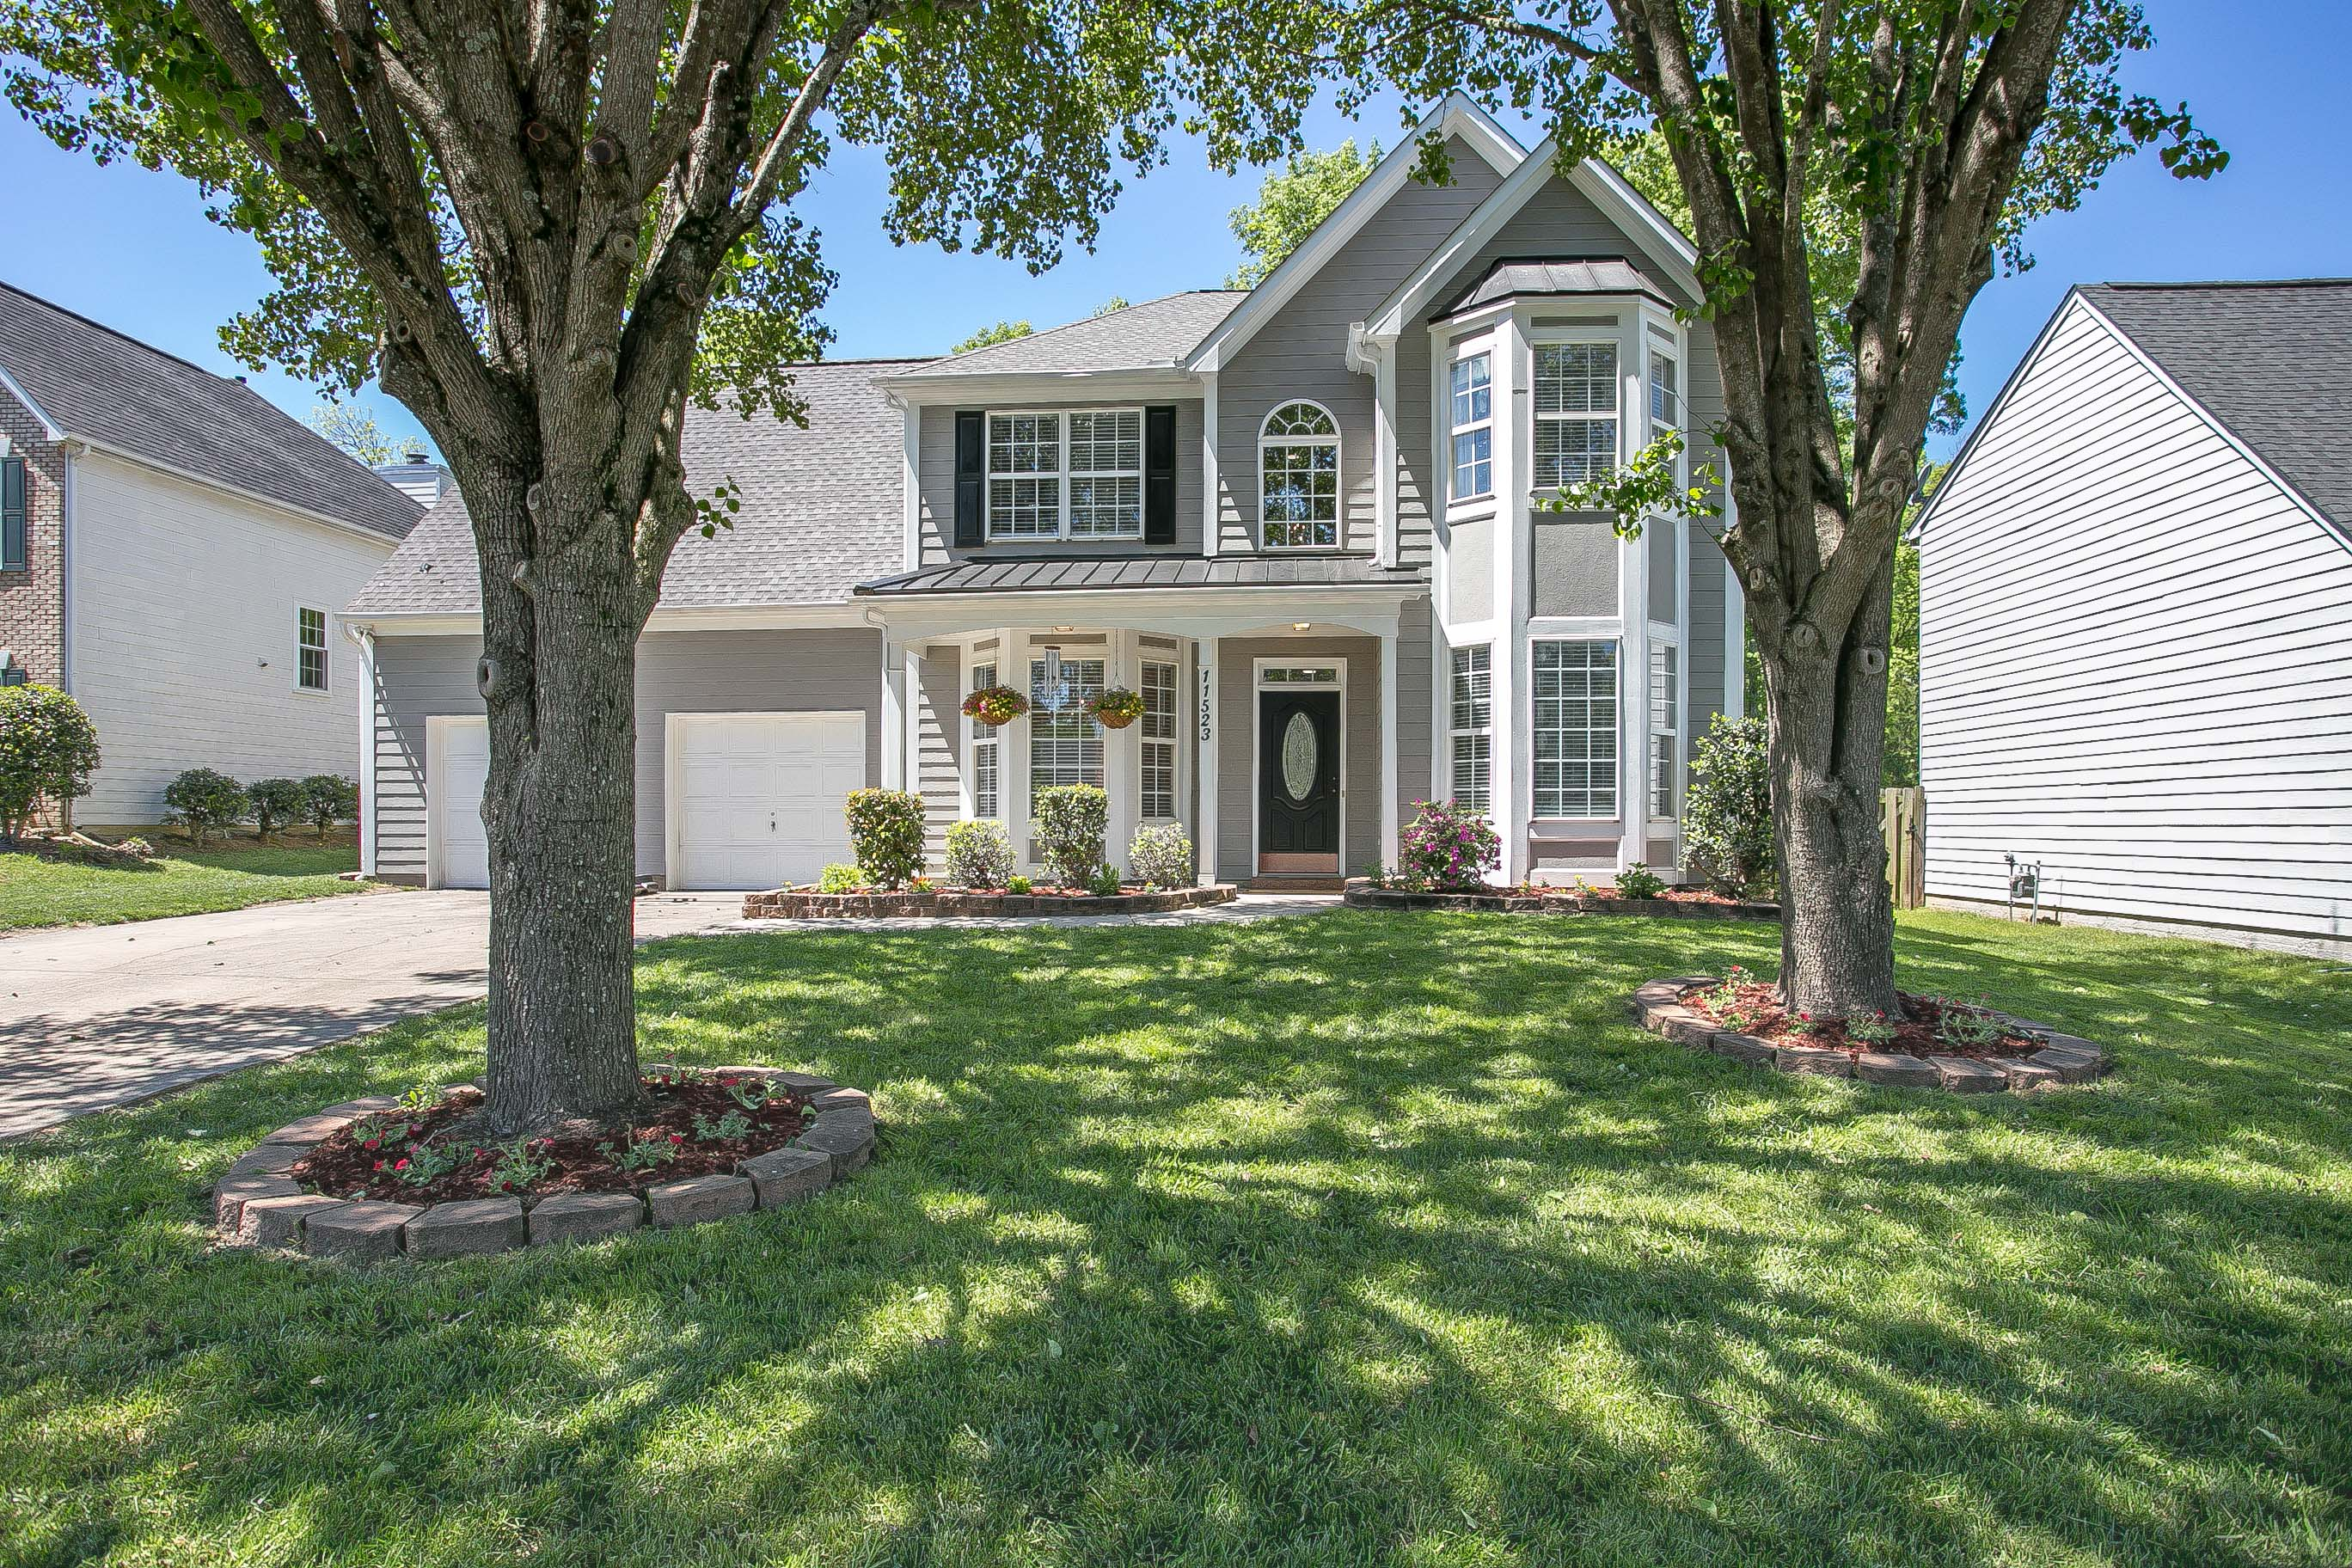 Real estate pictures of this gorgeous home shows a two story grey colored house with white trim, black shutters and black front door overlooking a front lawn with two shade trees.